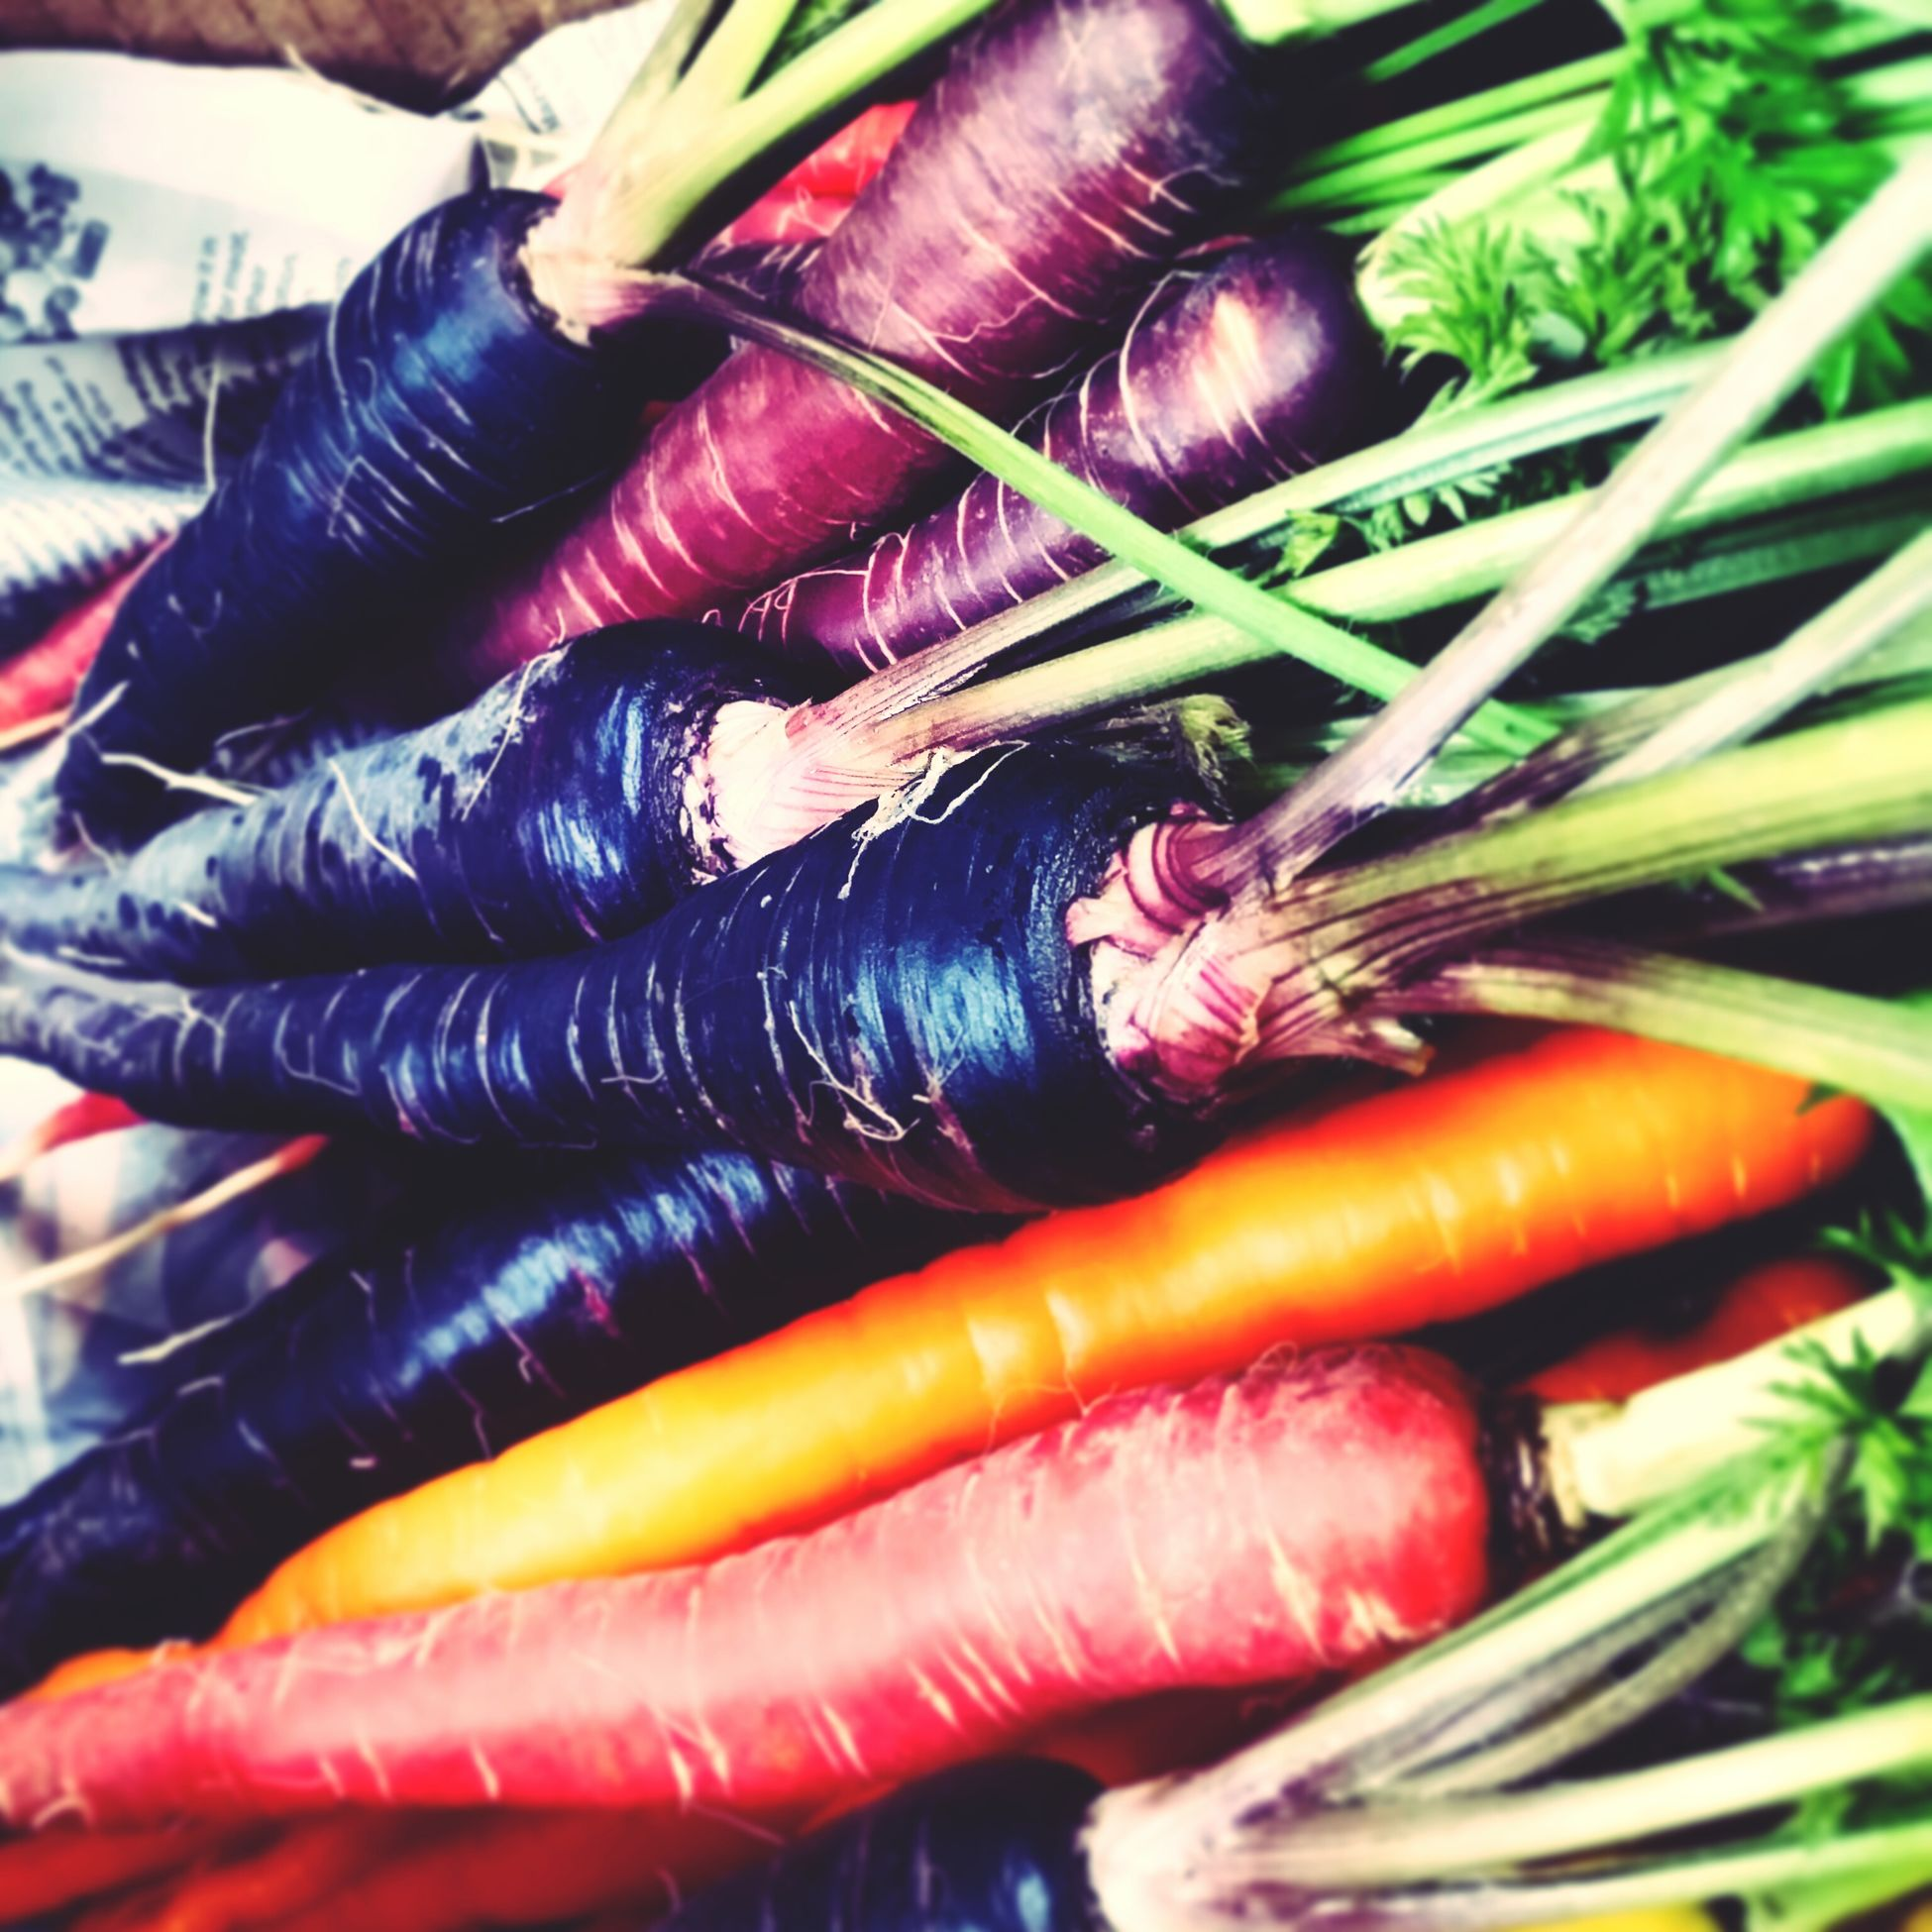 野菜やトラキ Itoshima Vegetables Carrot Carrots Red Purple Yellow いろち 人参 vegetable